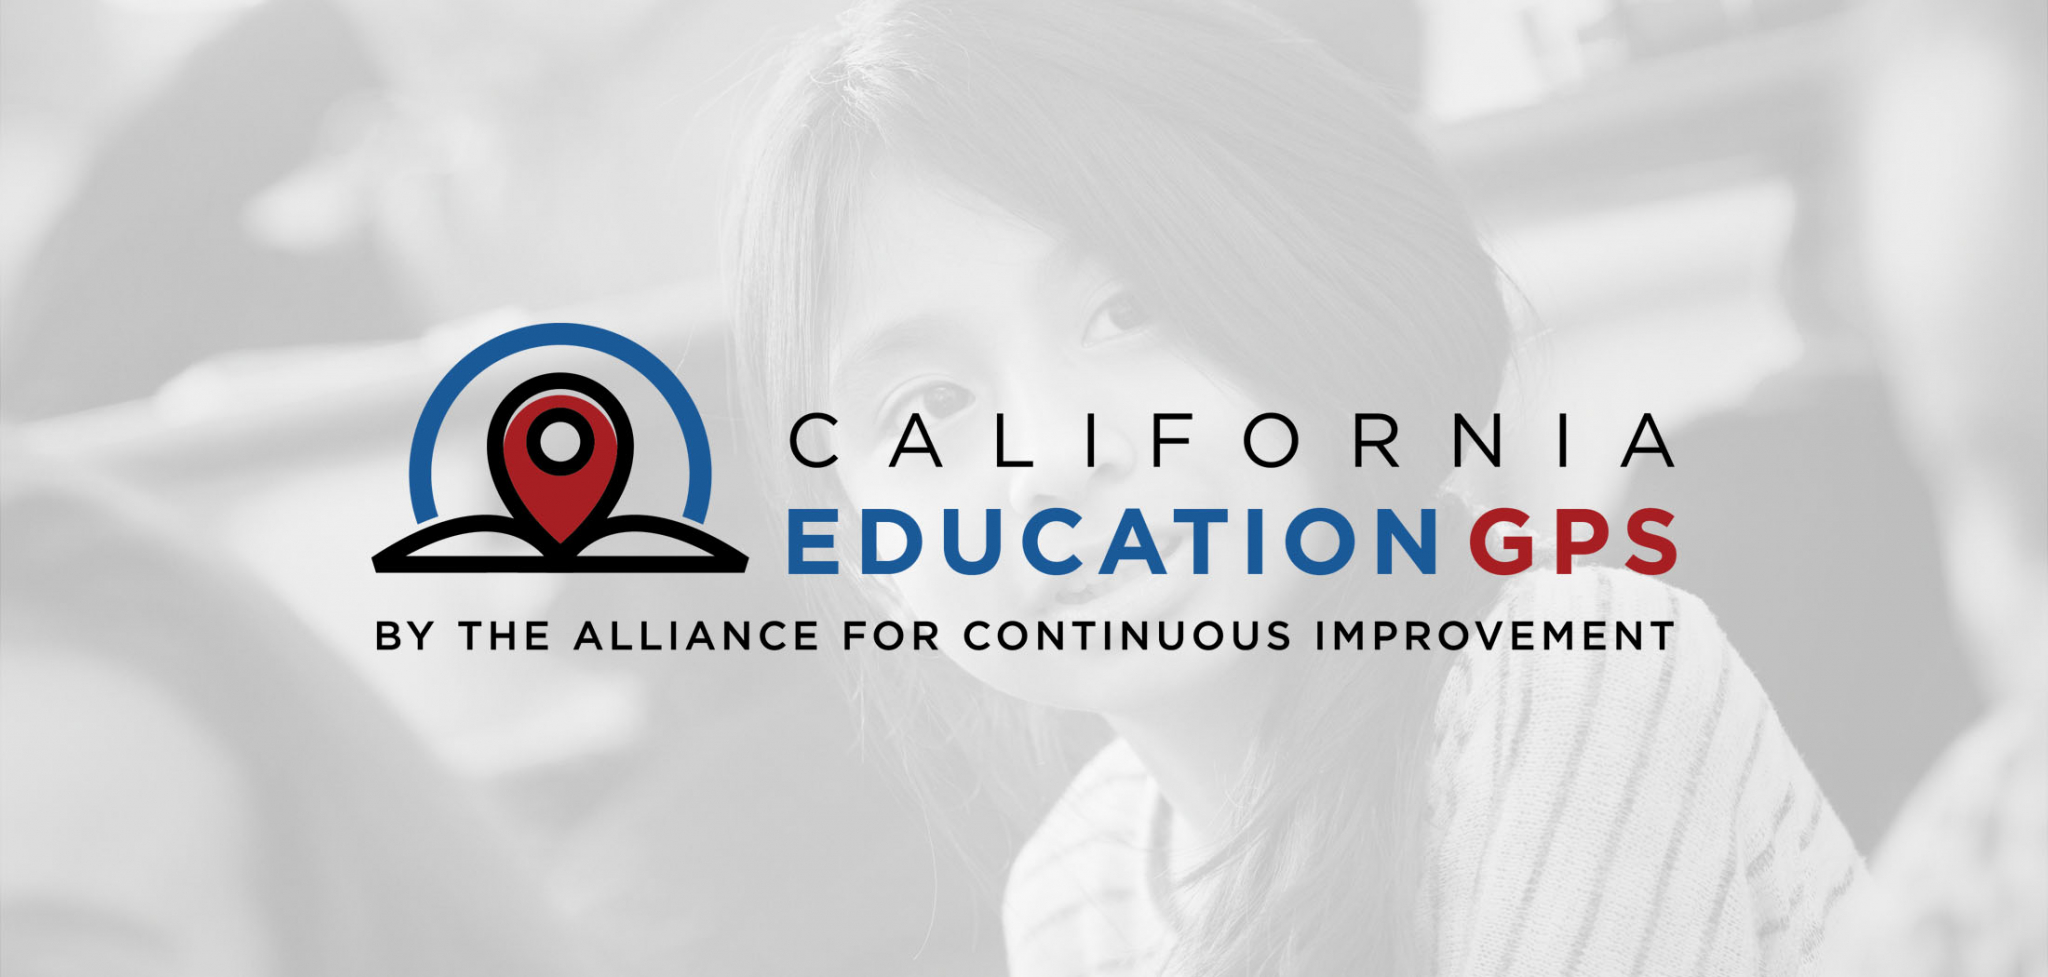 California Education Policy Logo Design